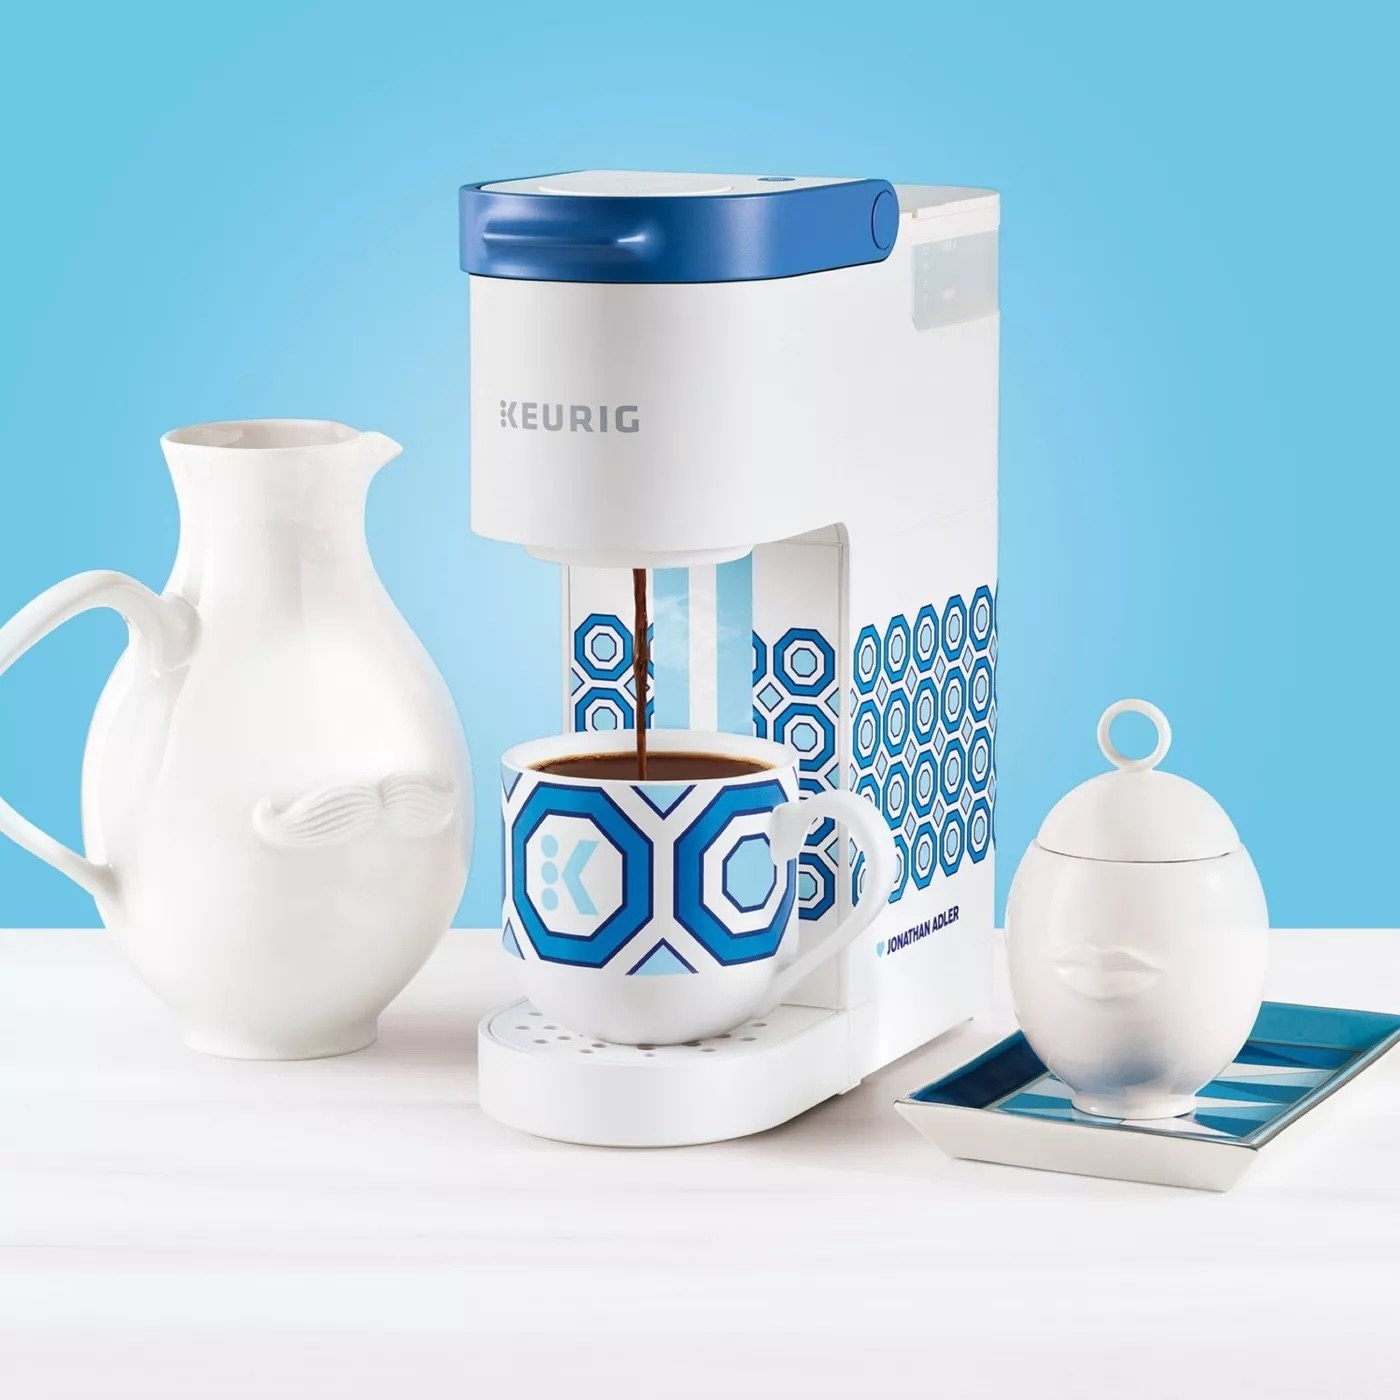 the patterned coffee maker next to white ceramics